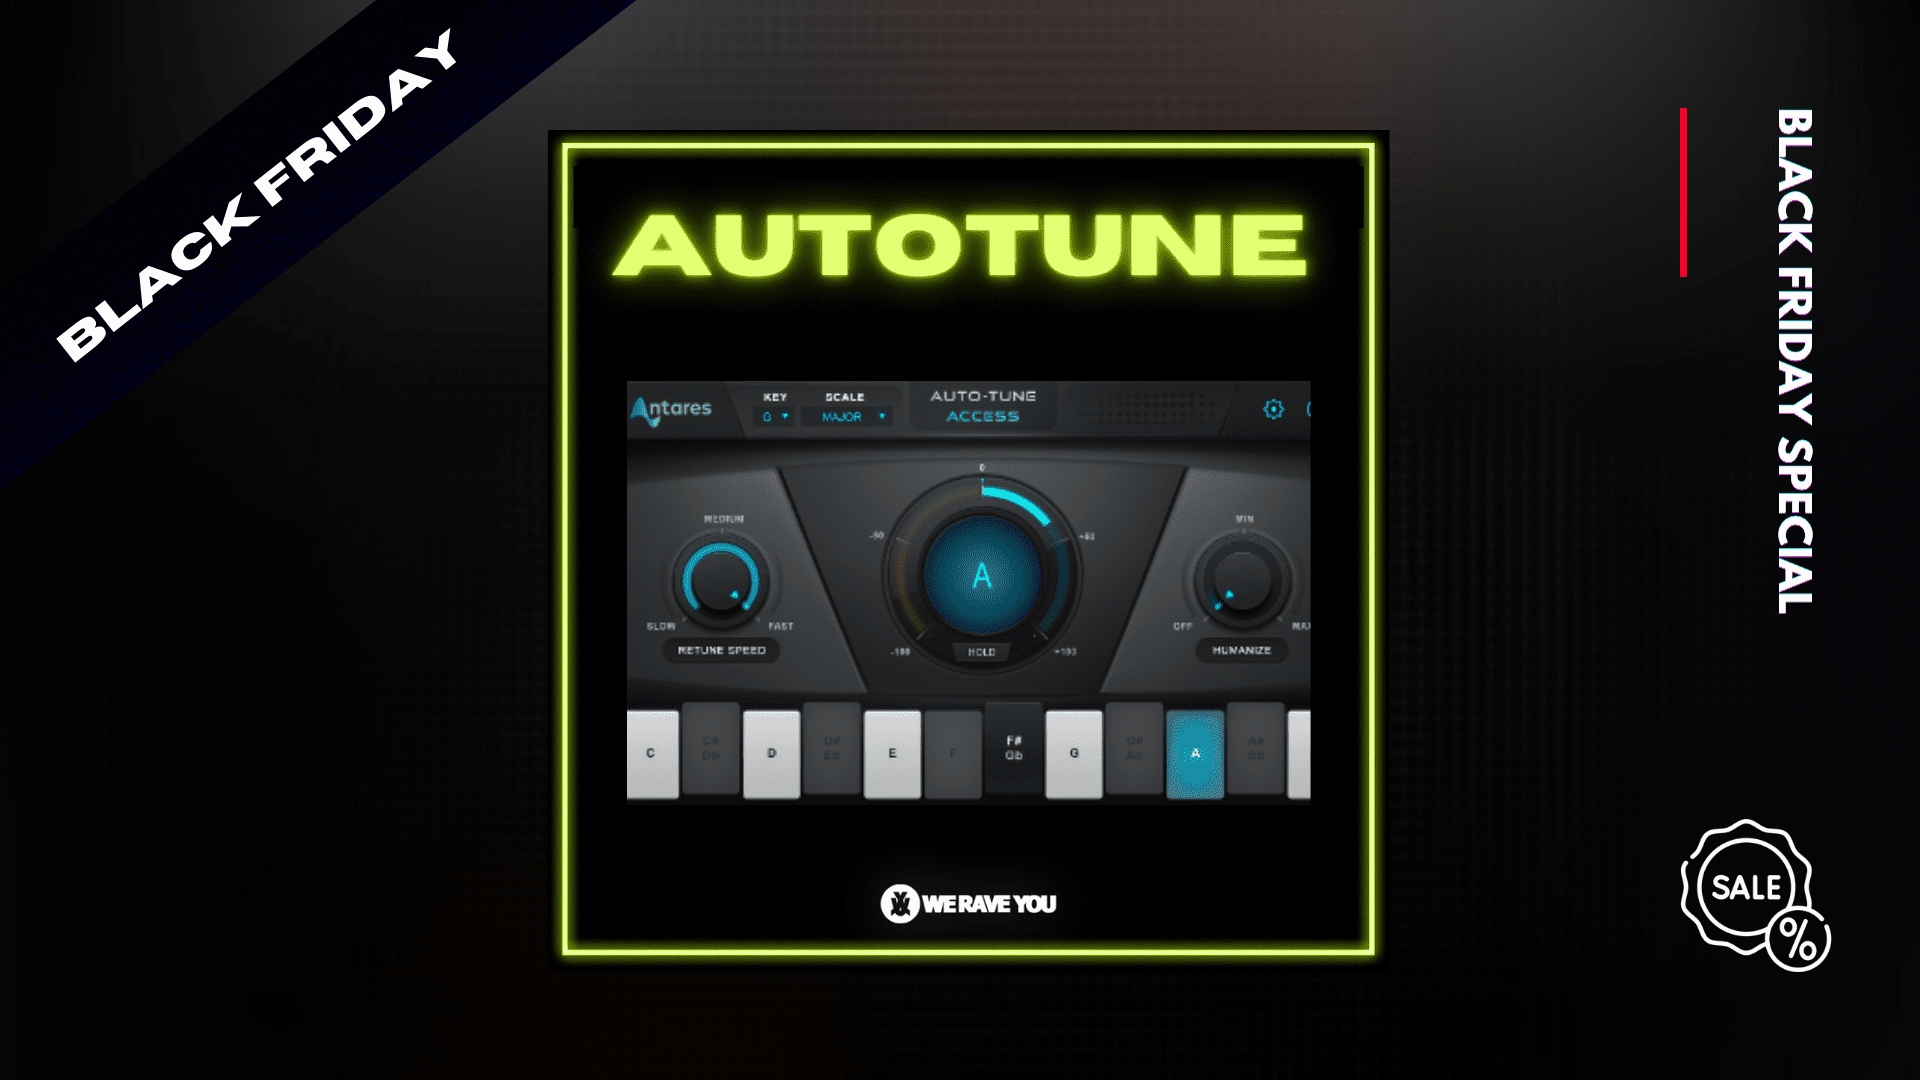 autotune blackfriday